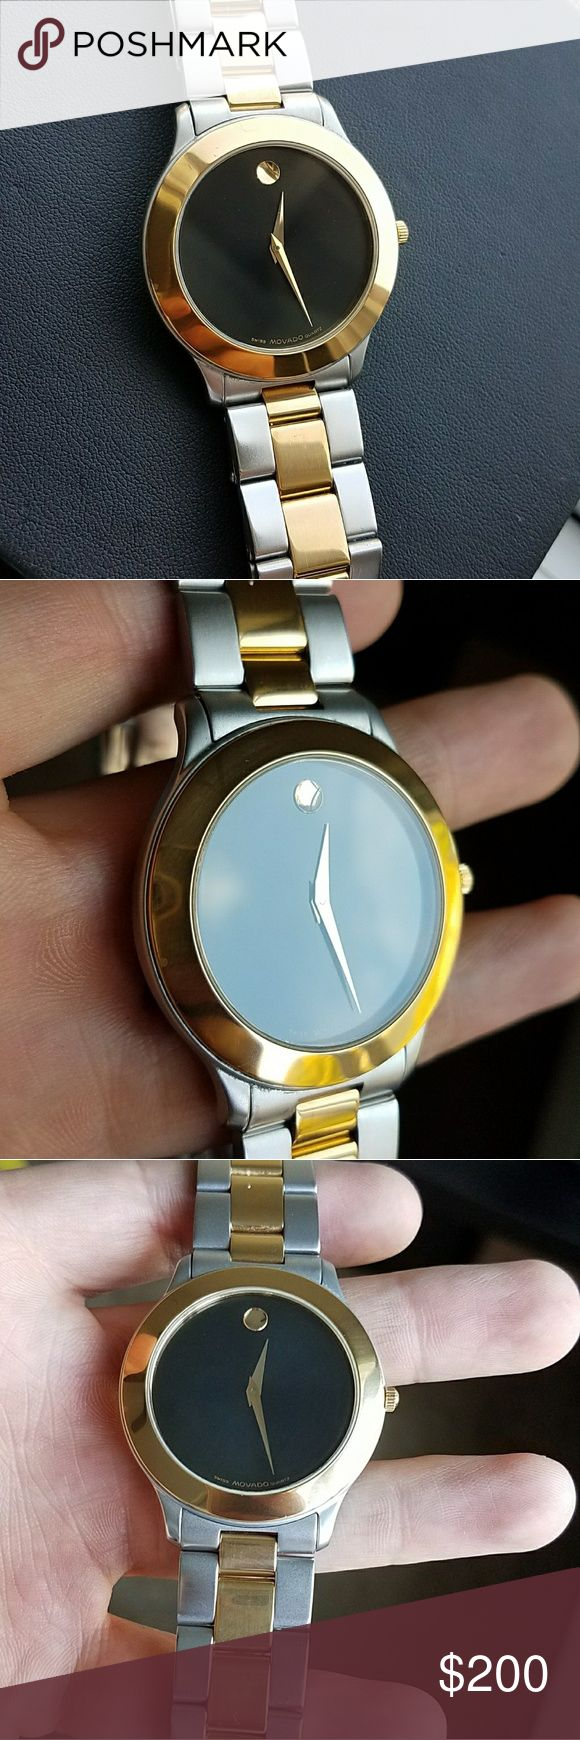 "Movado museum juro Two tone gold silver mens watch Fits 7 1/2"" wrist Movado Accessories Watches"